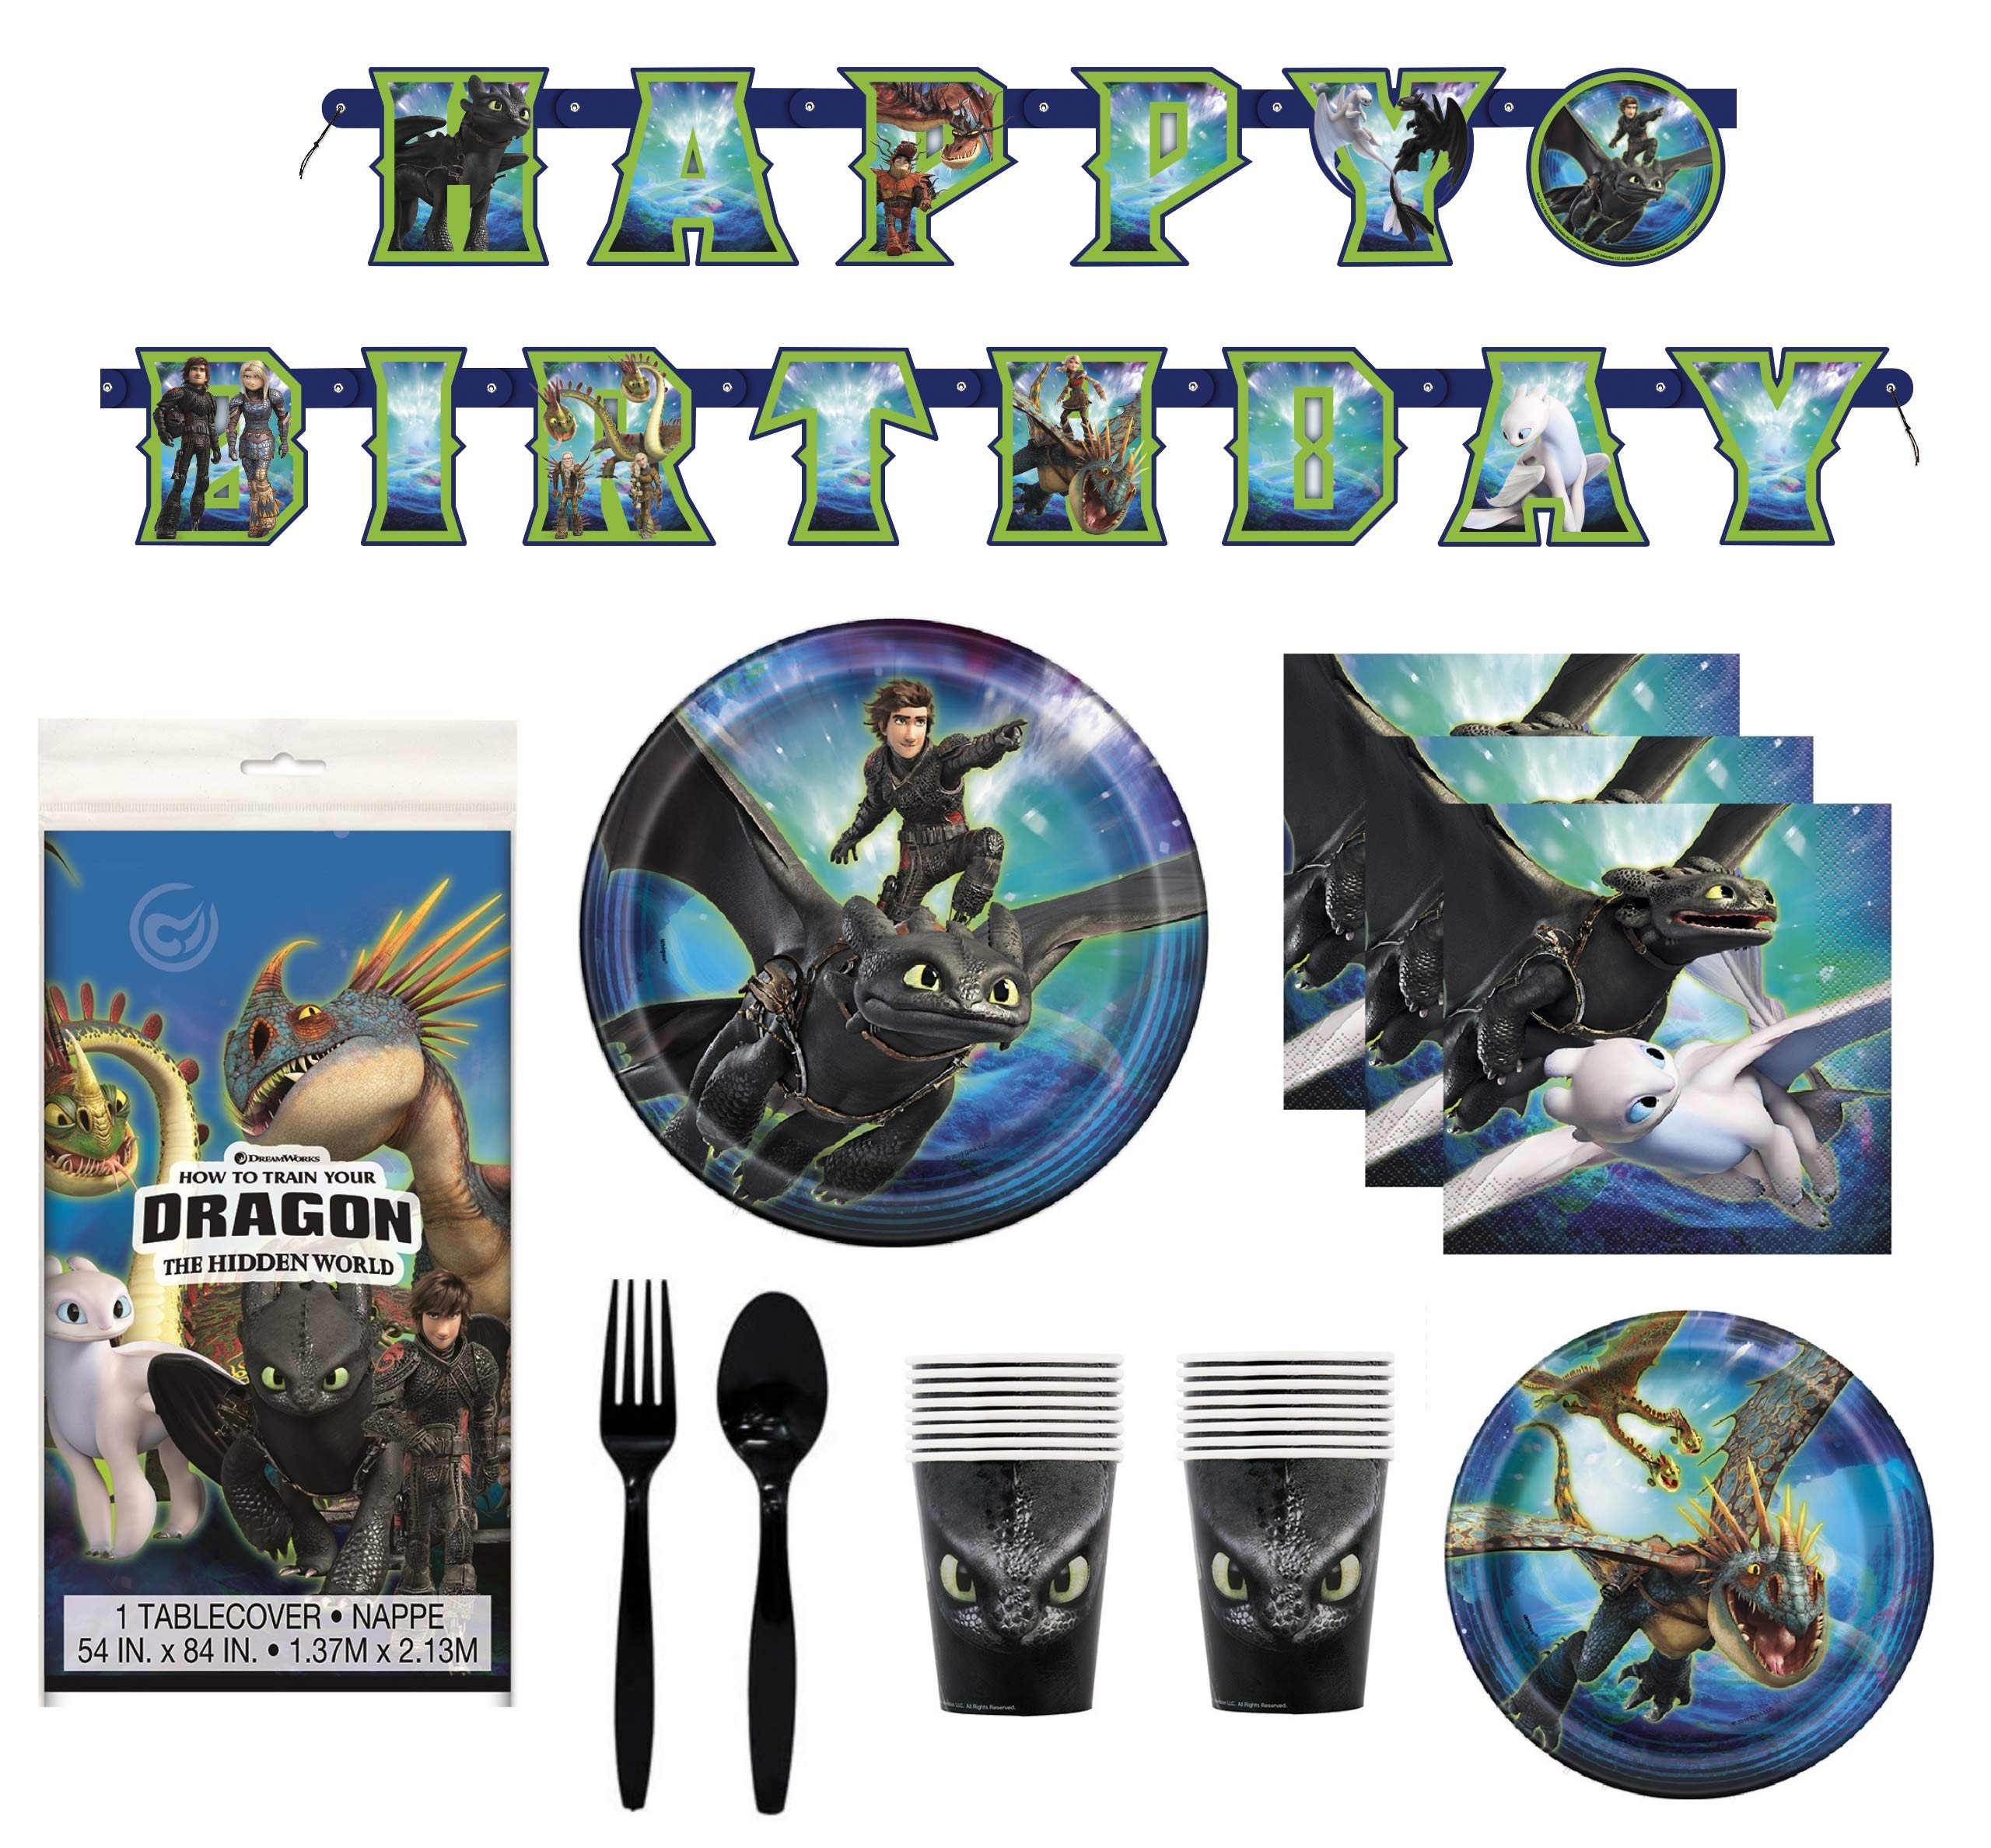 How To Train Your Dragon 3 Birthday Decorations And Tableware Plates Napkins Cups Table Cover Banner Premium Plastic Cutlery Serves 16 by FAKKOS Design (Image #1)